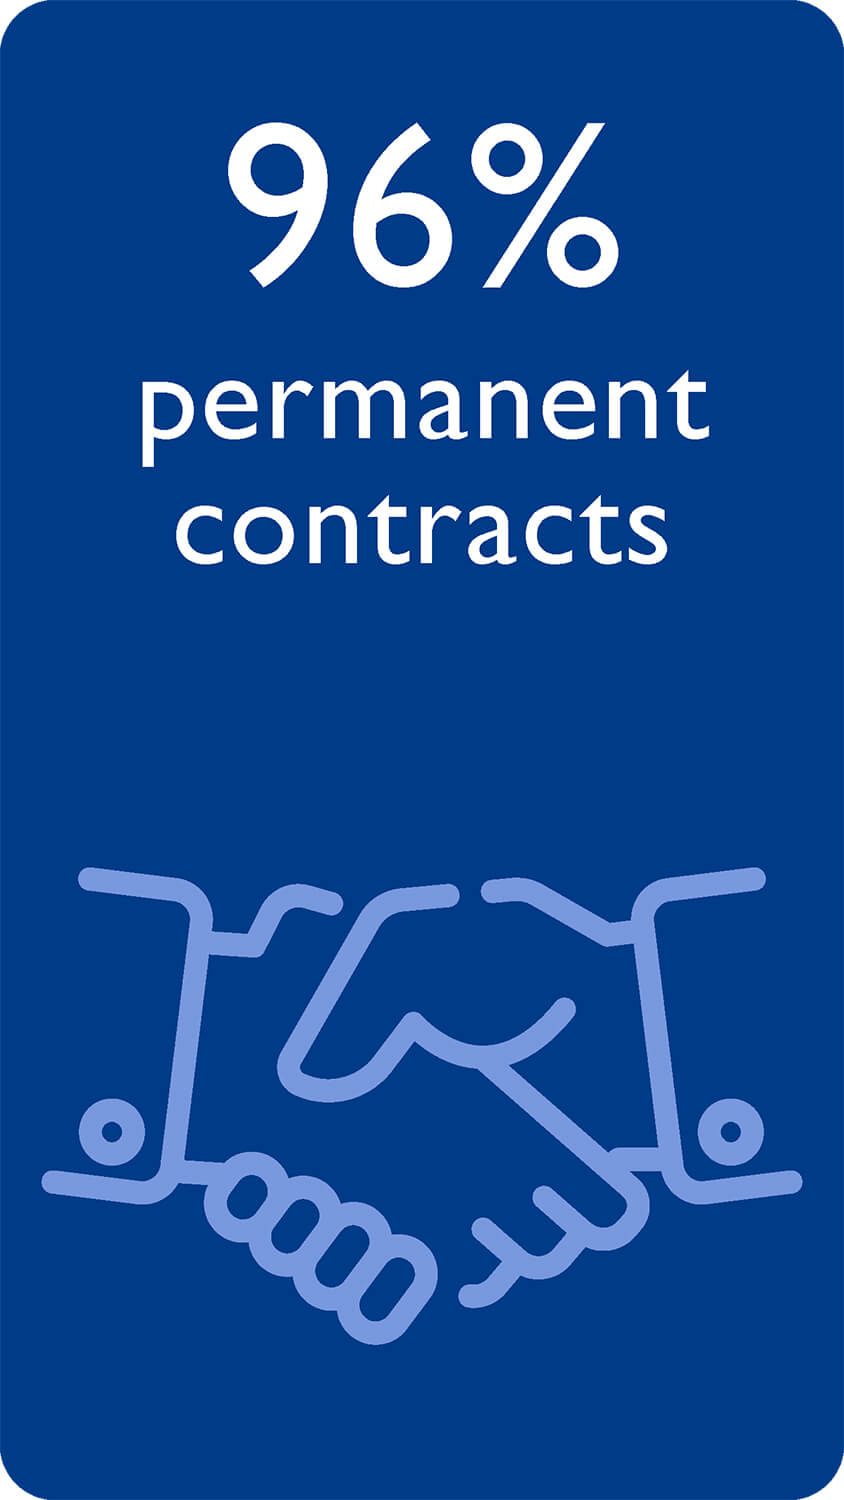 96% permanent contracts